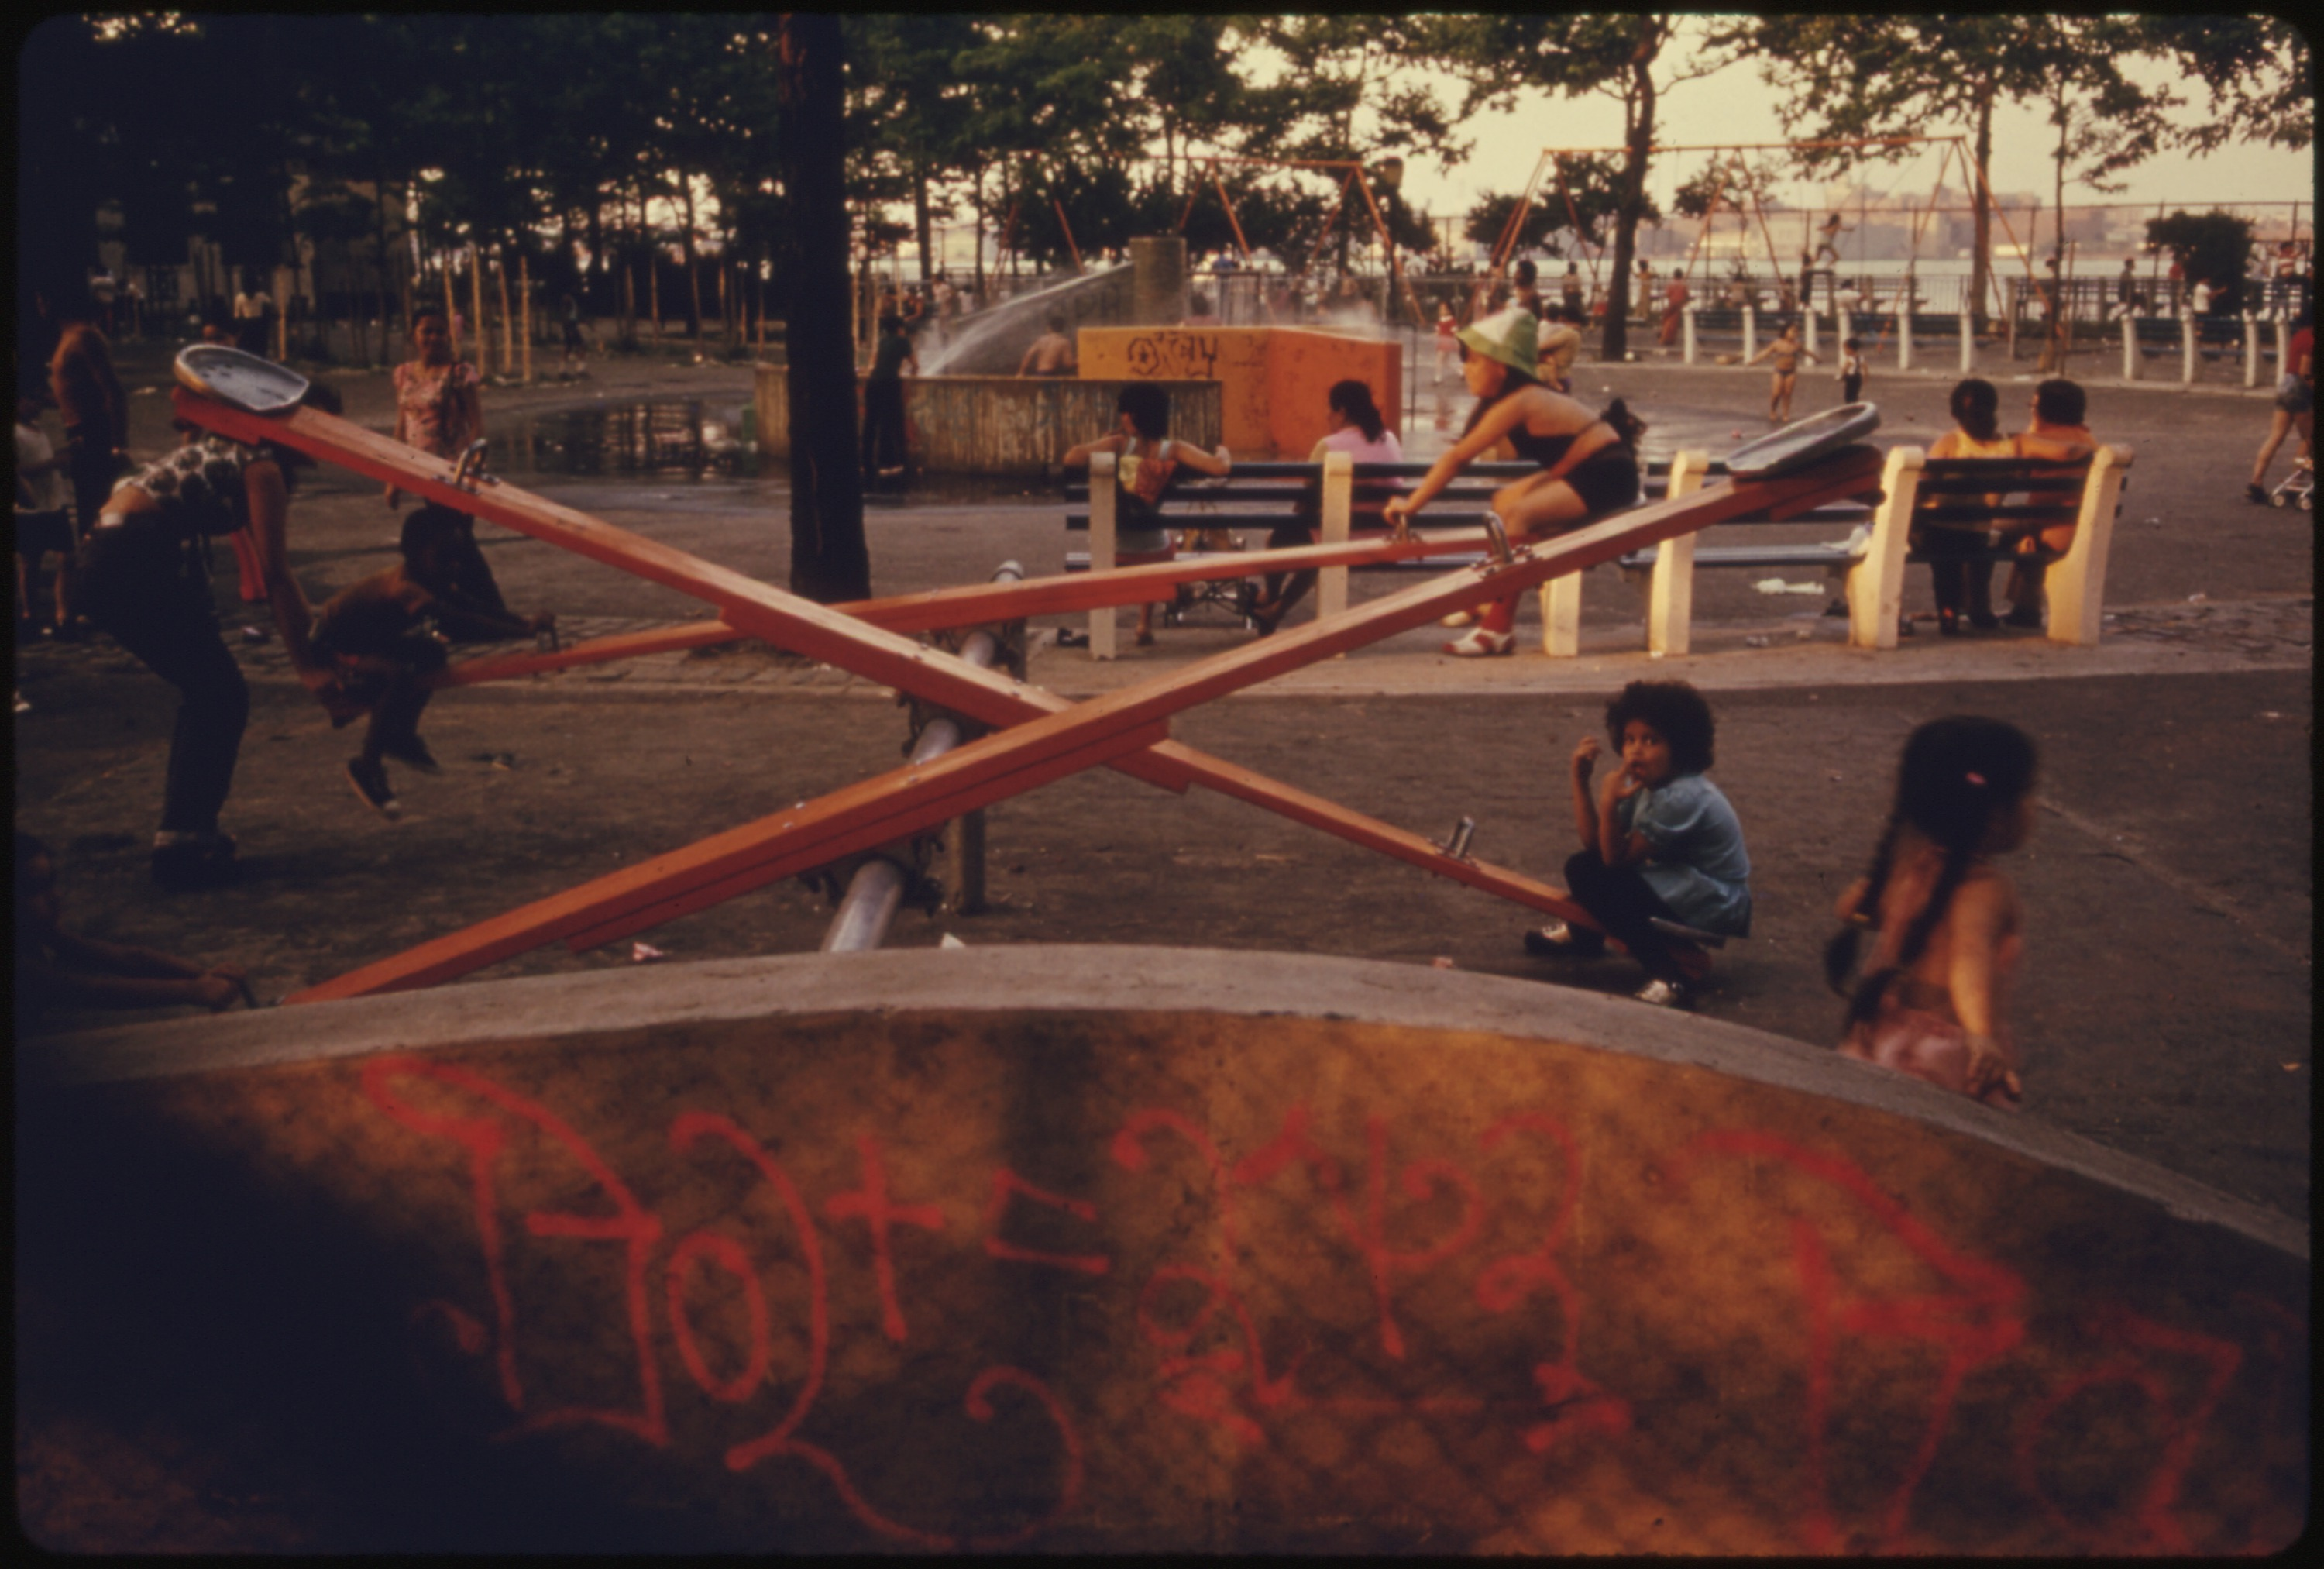 KIDS_ENJOYING_PLAYGROUND_EQUIPMENT_IN_EAST_RIVER_PARK_IN_MANHATTAN,_NEW_YORK_CITY._THE_INNER_CITY_TODAY_IS_AN..._-_NARA_-_555946